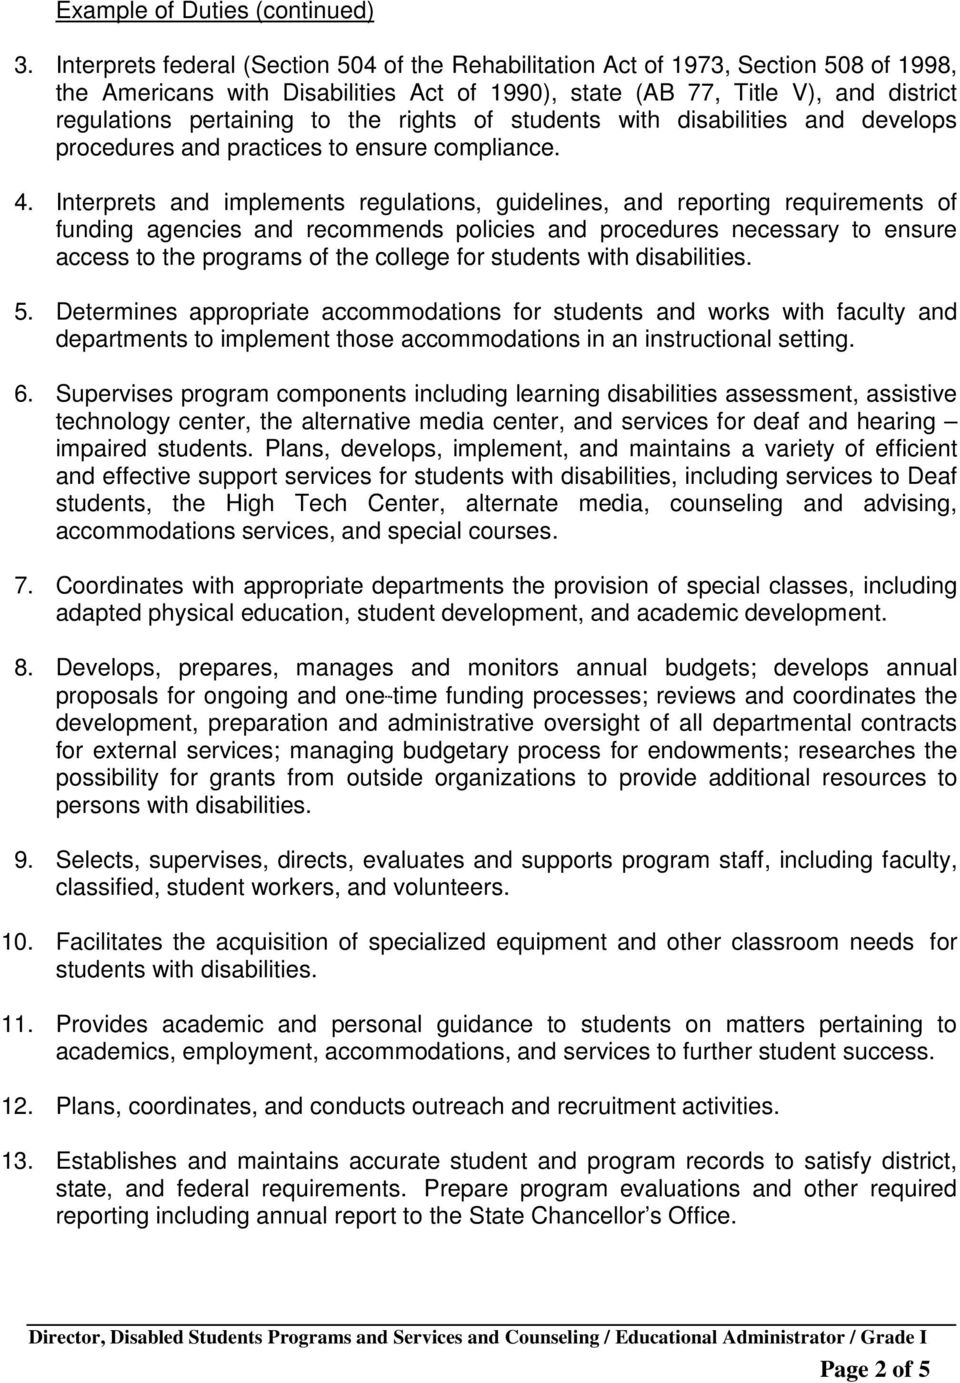 the rights of students with disabilities and develops procedures and practices to ensure compliance. 4.